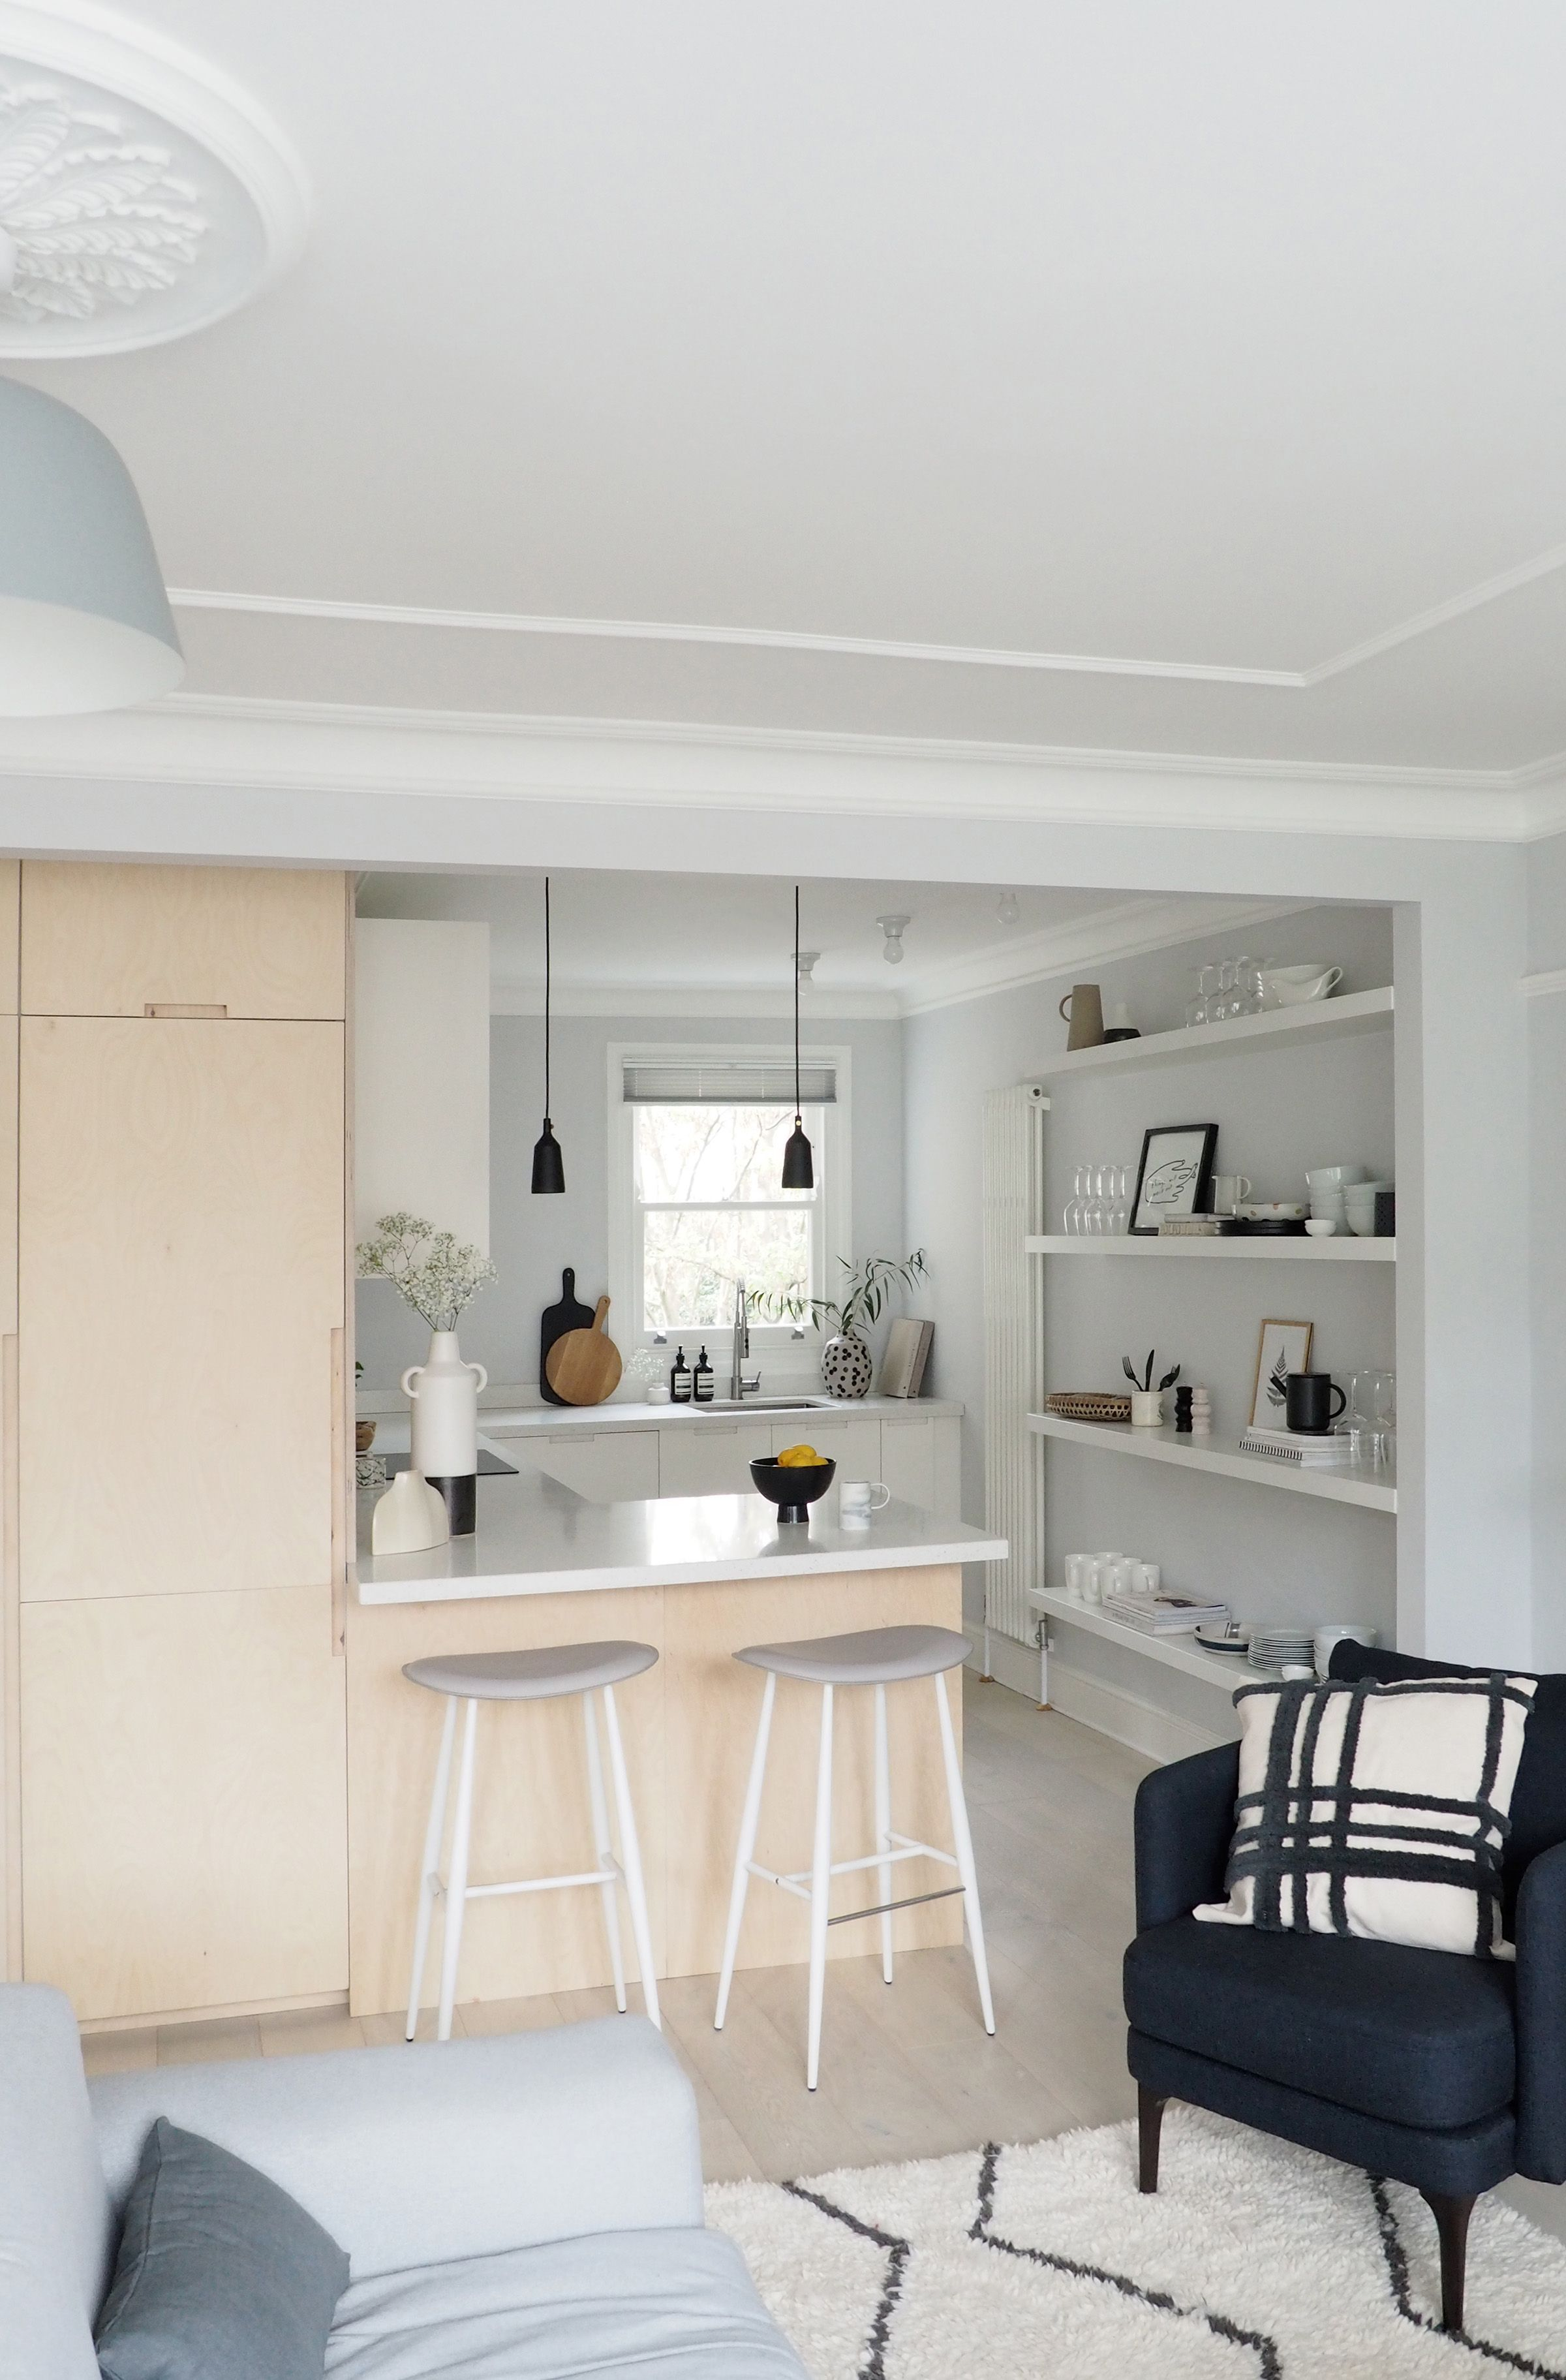 new interior project a light filled minimalist kitchen and living room living room and on kitchen interior small space id=18864